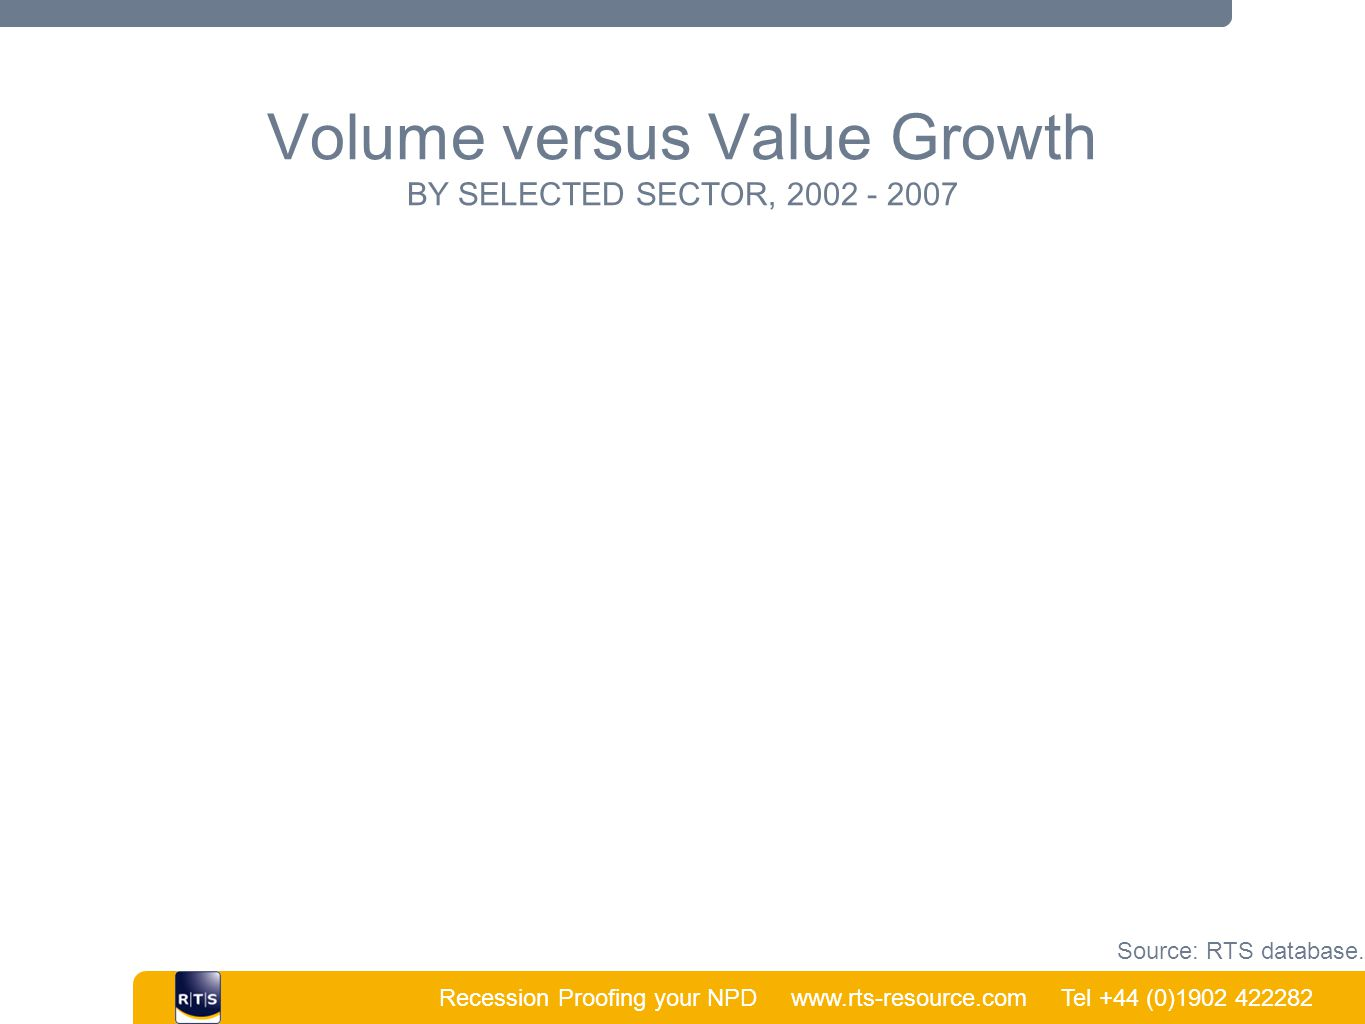 Recession Proofing your NPD www.rts-resource.com Tel +44 (0)1902 422282 | Volume versus Value Growth BY SELECTED SECTOR, 2002 - 2007 Source: RTS datab